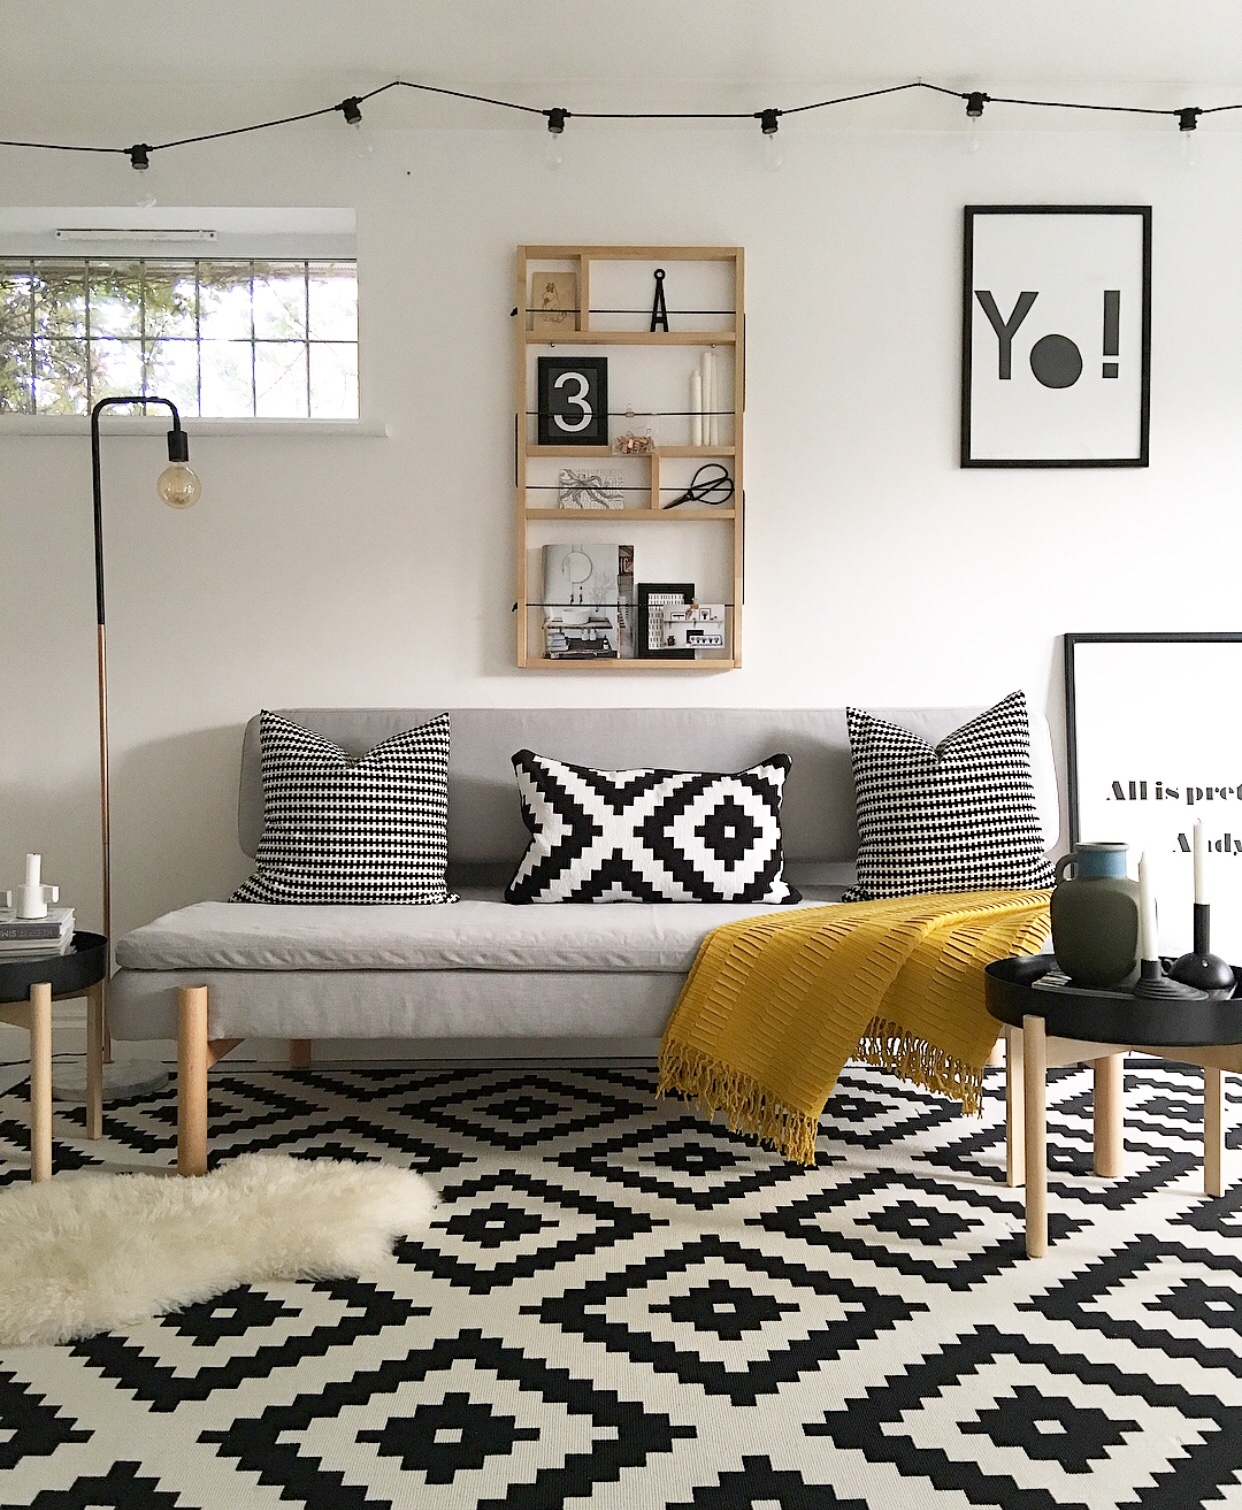 Peachy Ikea X Hay Ypperlig Nest Twenty Eight Gmtry Best Dining Table And Chair Ideas Images Gmtryco